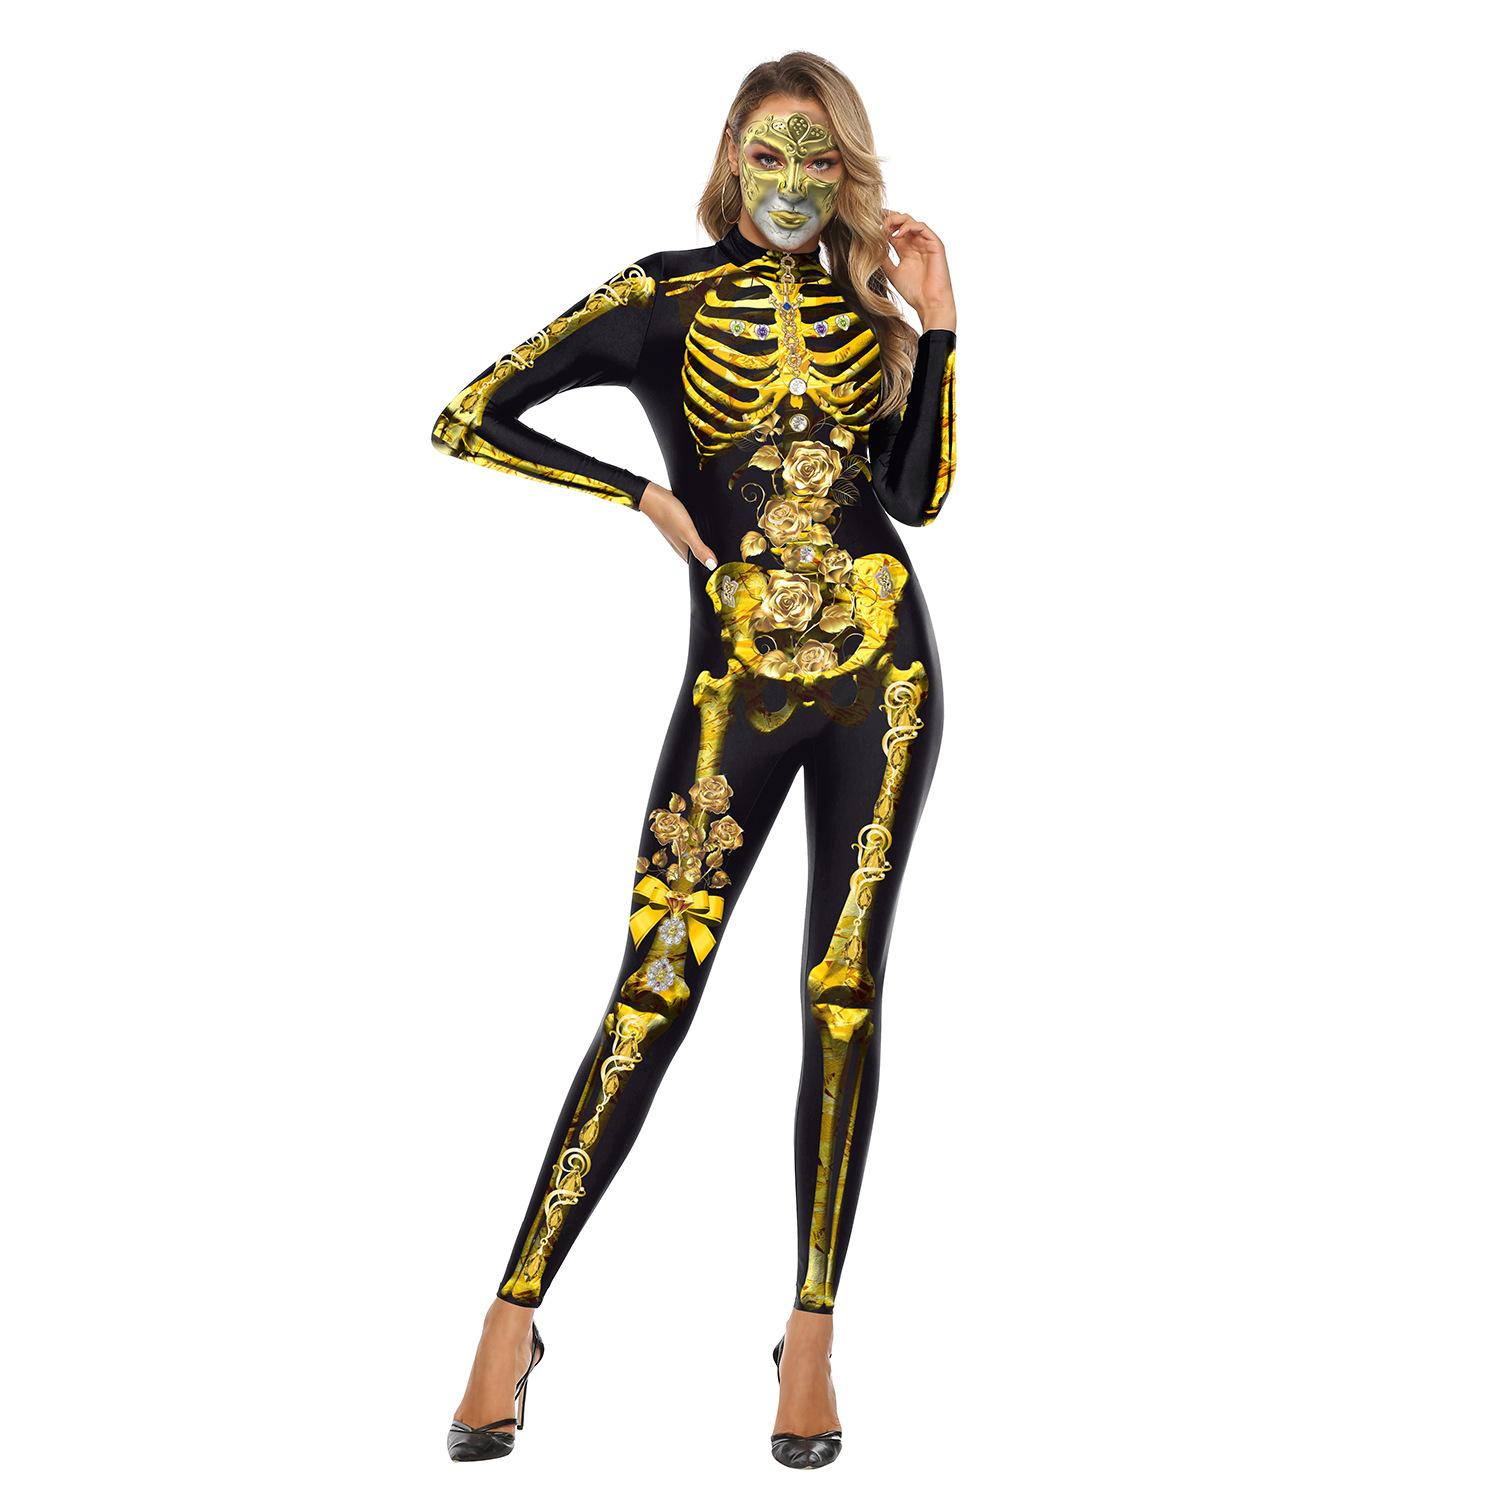 Designer Autumn 3D Truss Printing Adult Woman Role Game Anime Cosplay Playing Halloween Festival Adult Street Costume Jumpsuit